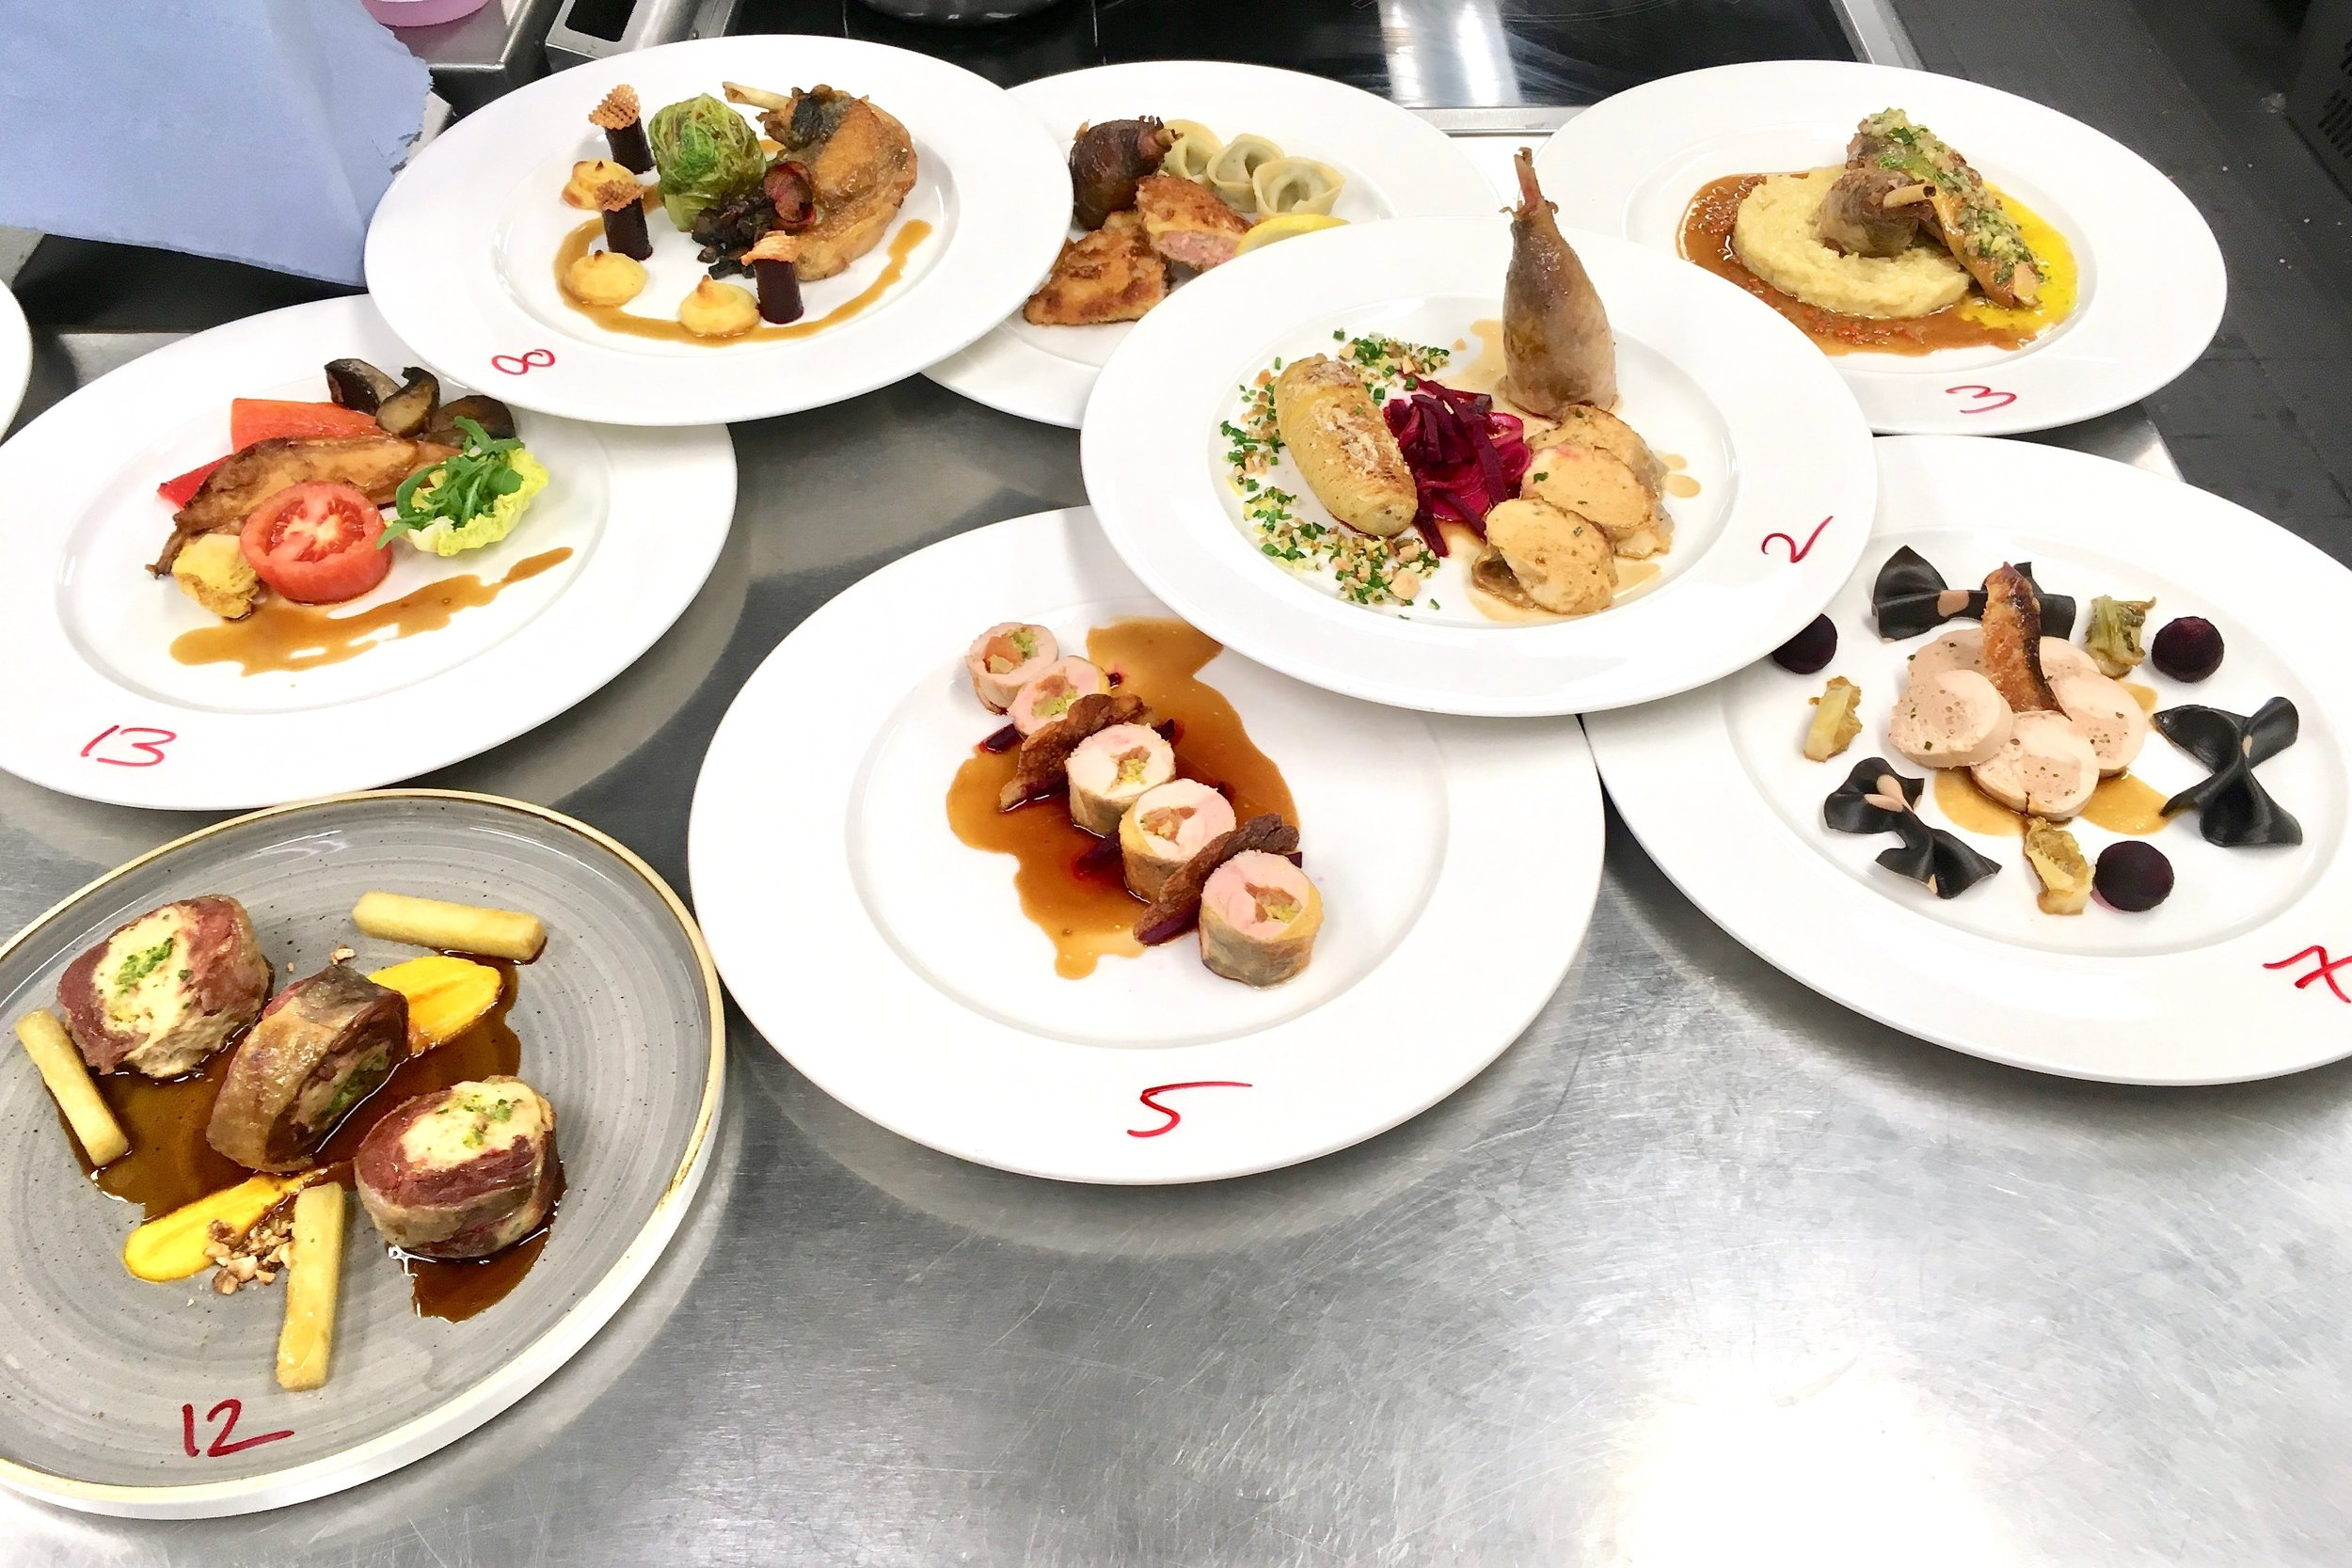 More main courses from Group C